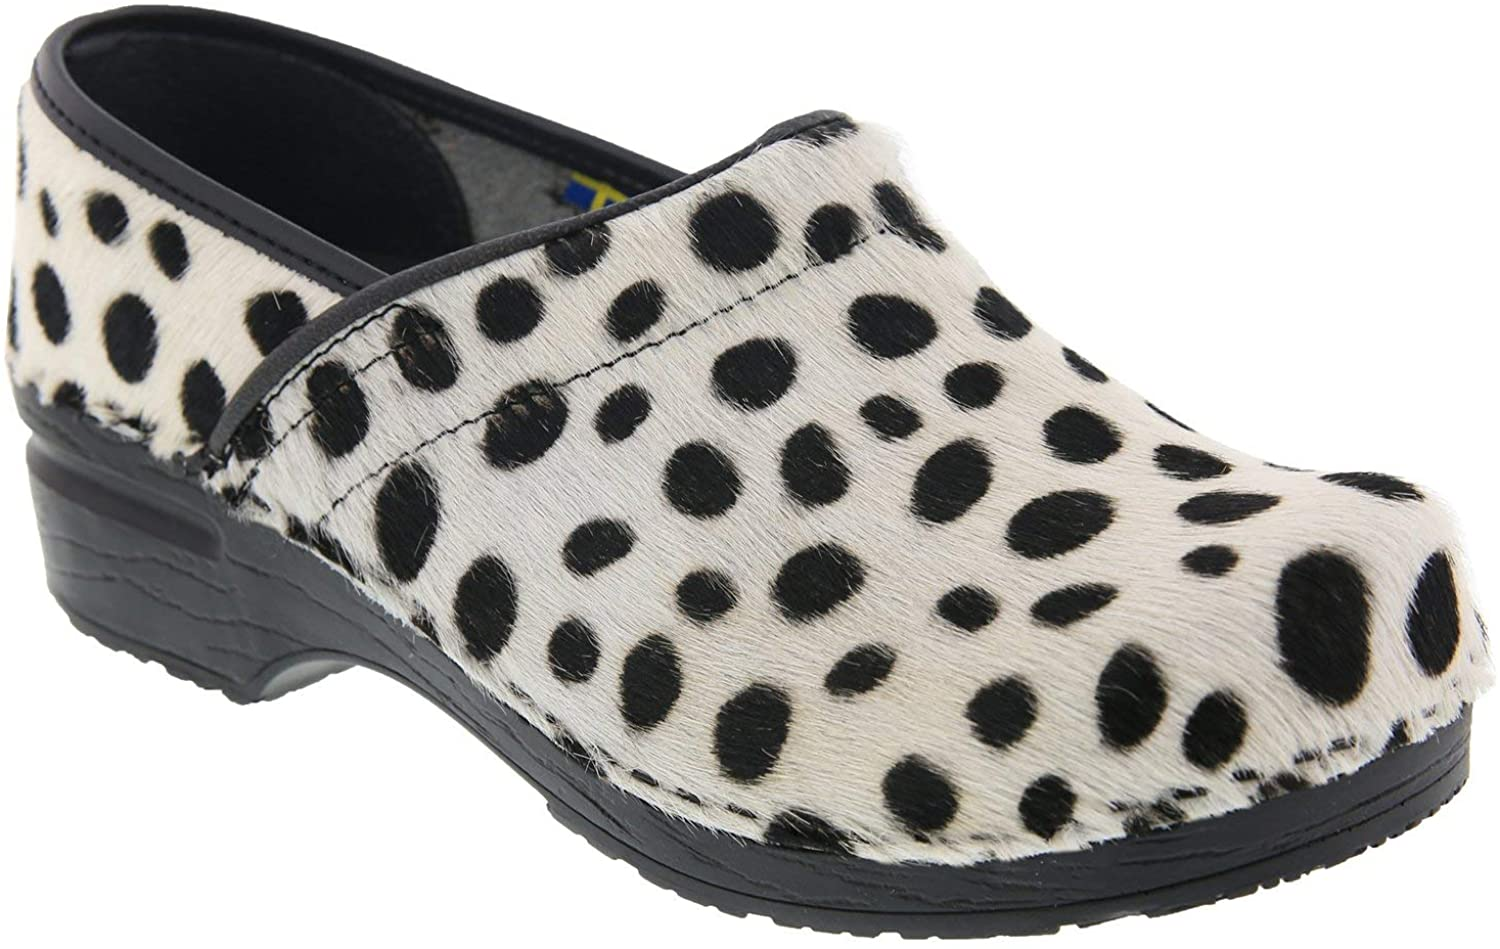 Bjork Professional Safari Leather and Fur Clogs in Ocelot Print